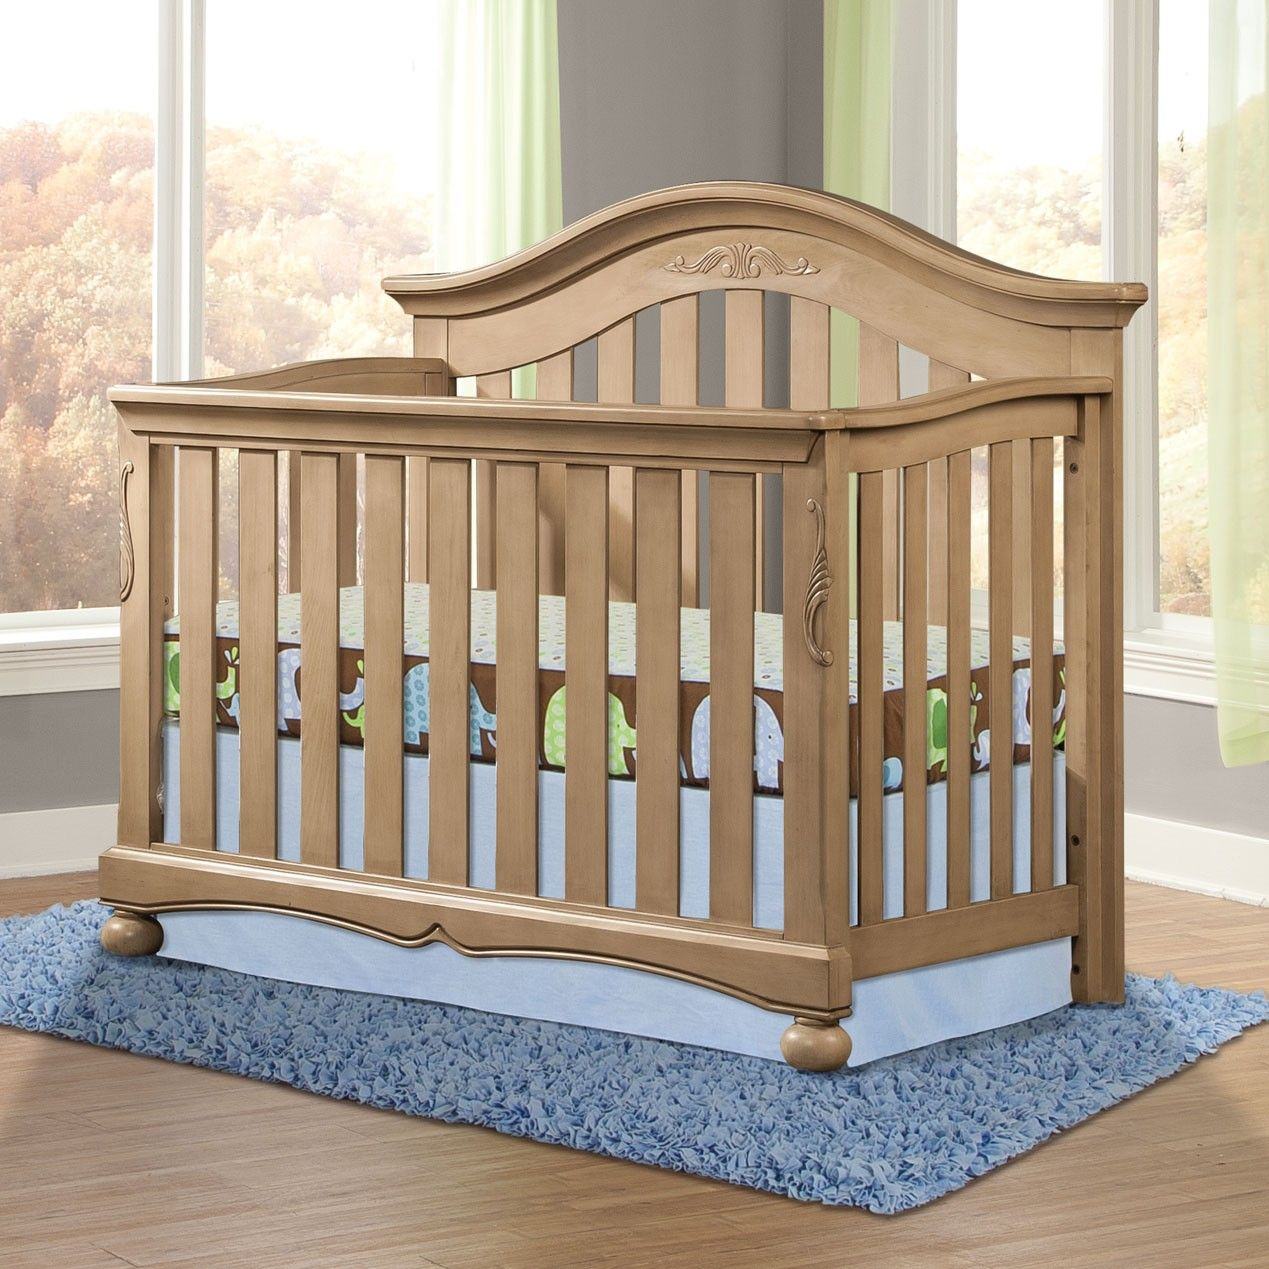 convertible westwood cloud s crib baby furniture item contour cameron product cribs kids leon